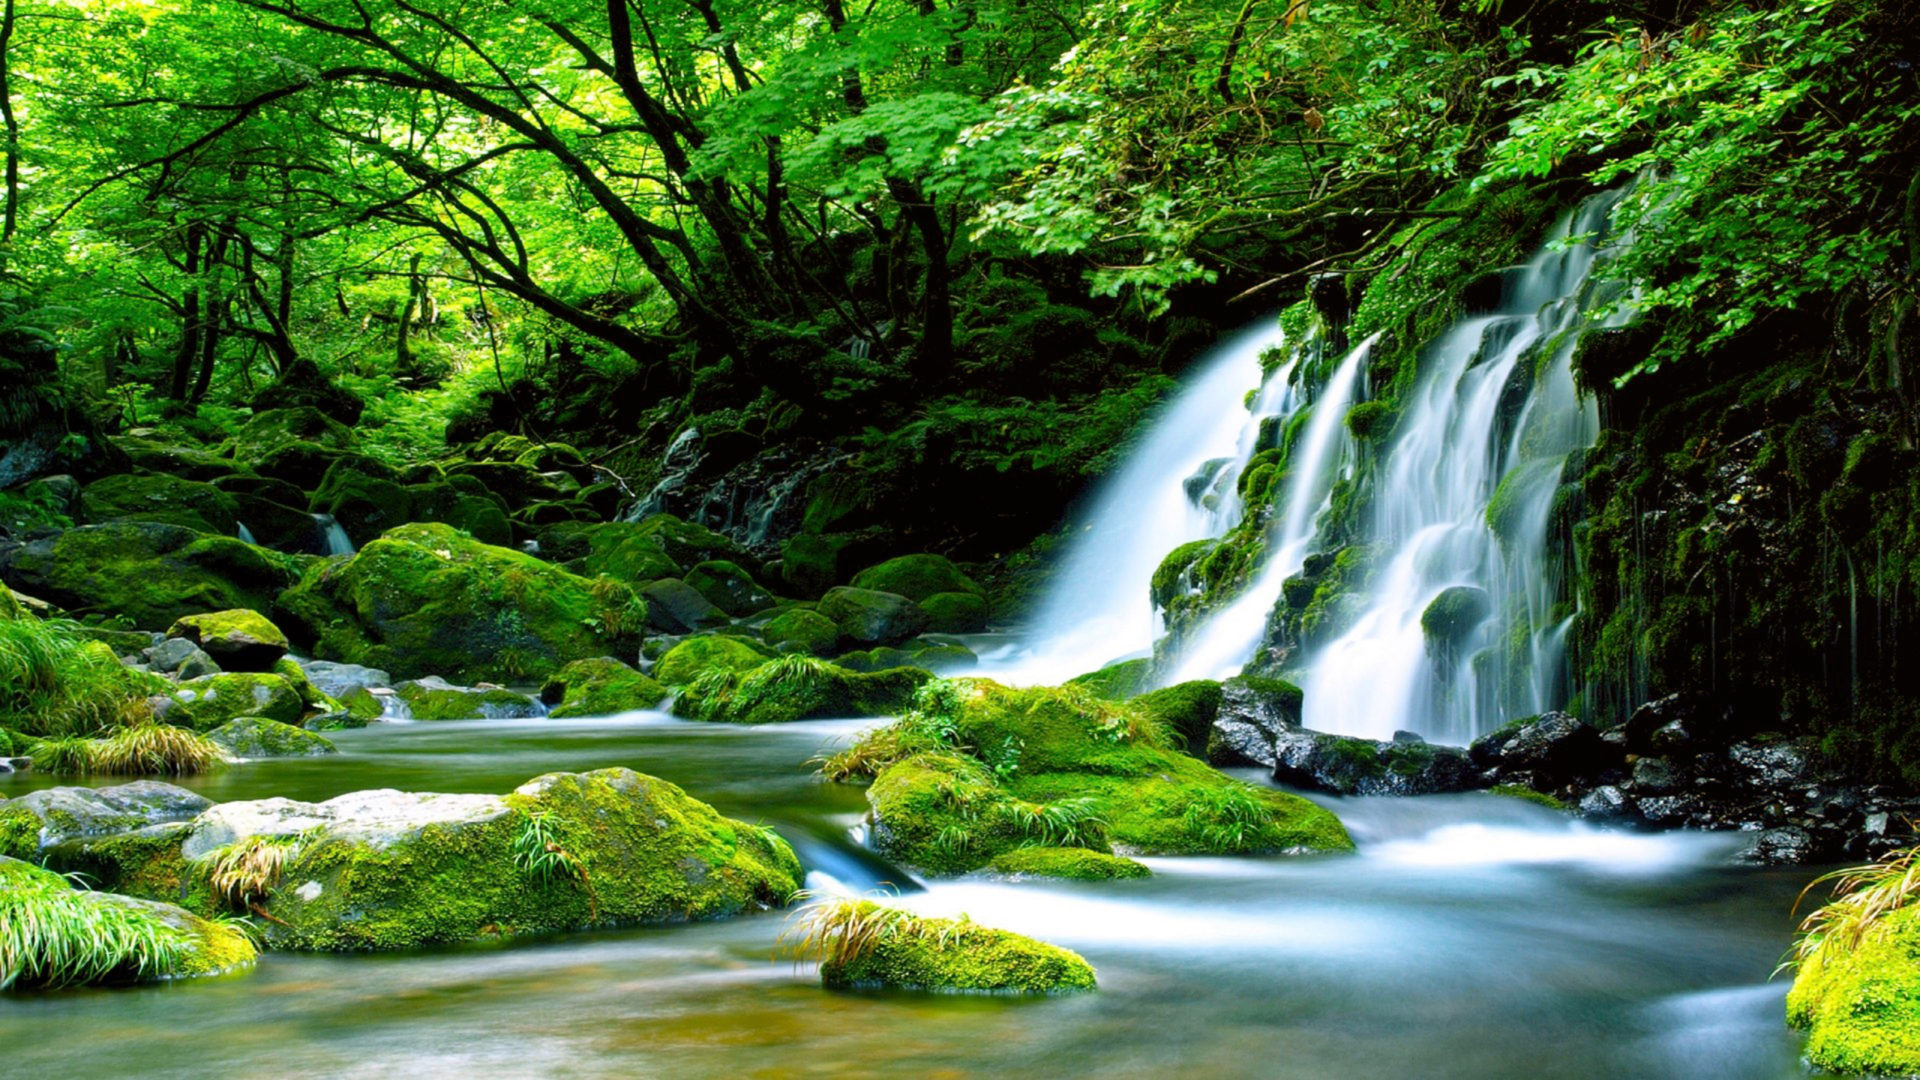 Kuang Si Falls Hd Wallpaper 1920 Green Waterfall River Rocks Covered With Green Moss Forest